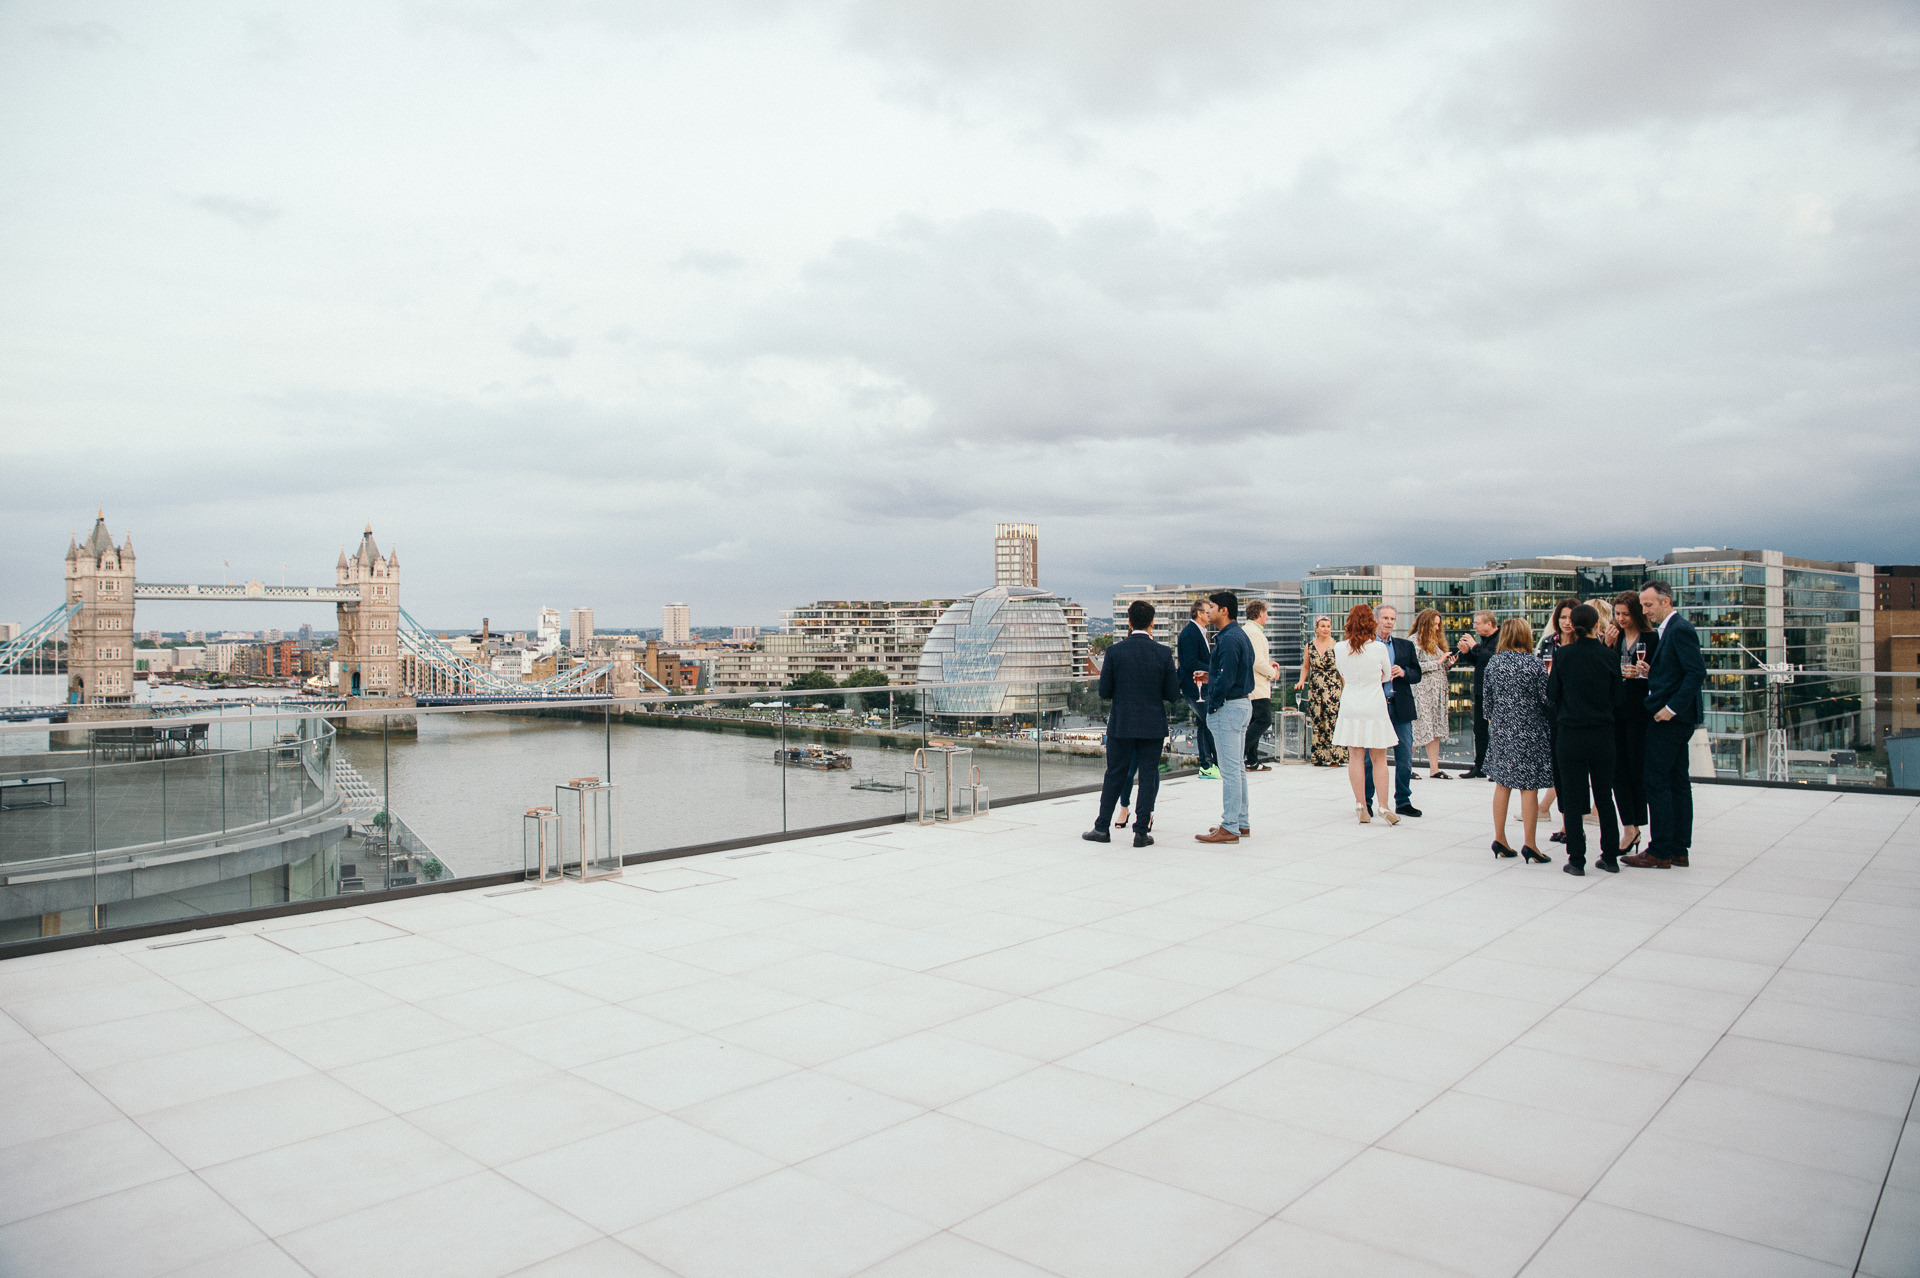 Roof terrace with a view over Tower Bridge London